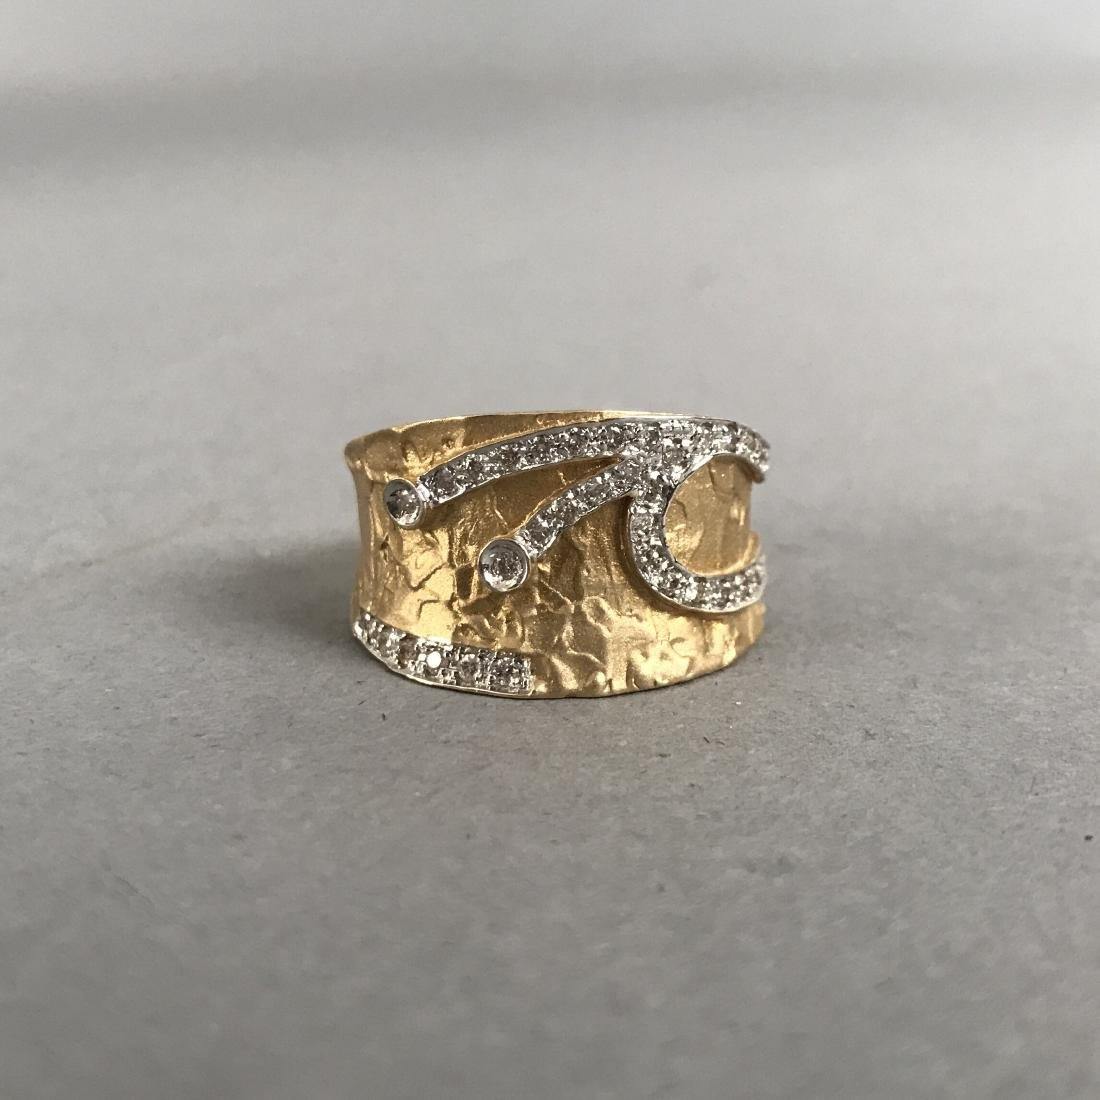 14K Gold Textured Ring with Diamond Design - 3